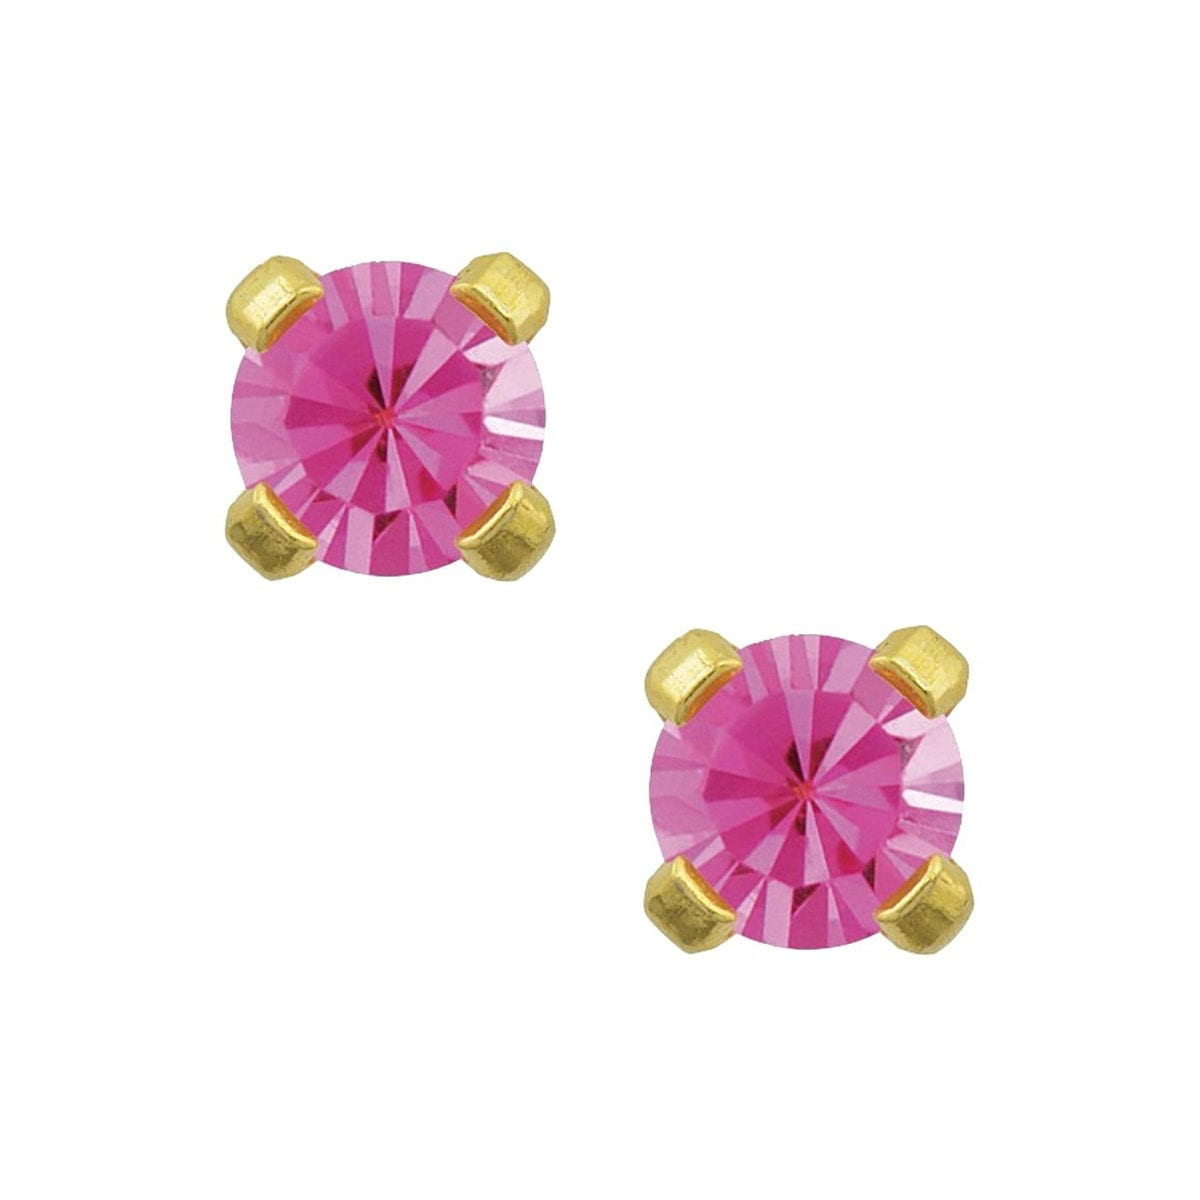 studex-tiny-tips-october-rose-gold-plated-earrings